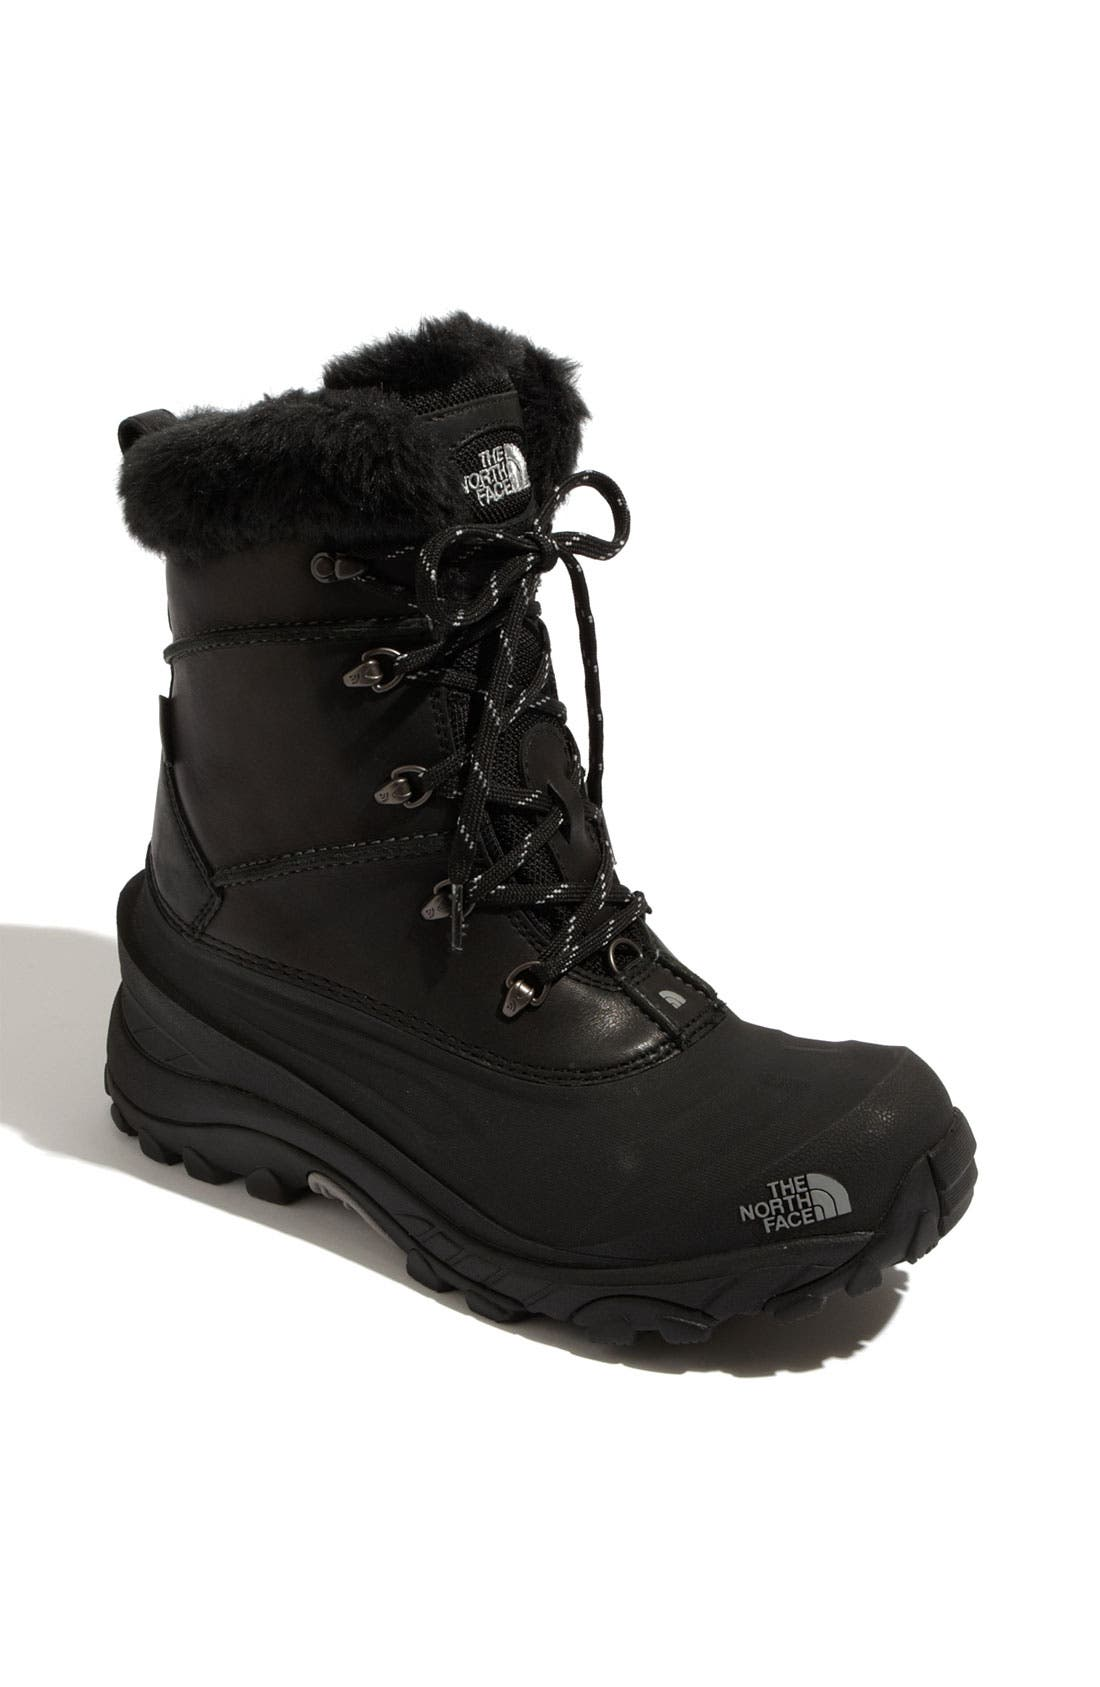 Main Image - The North Face 'McMurdo II' Boot